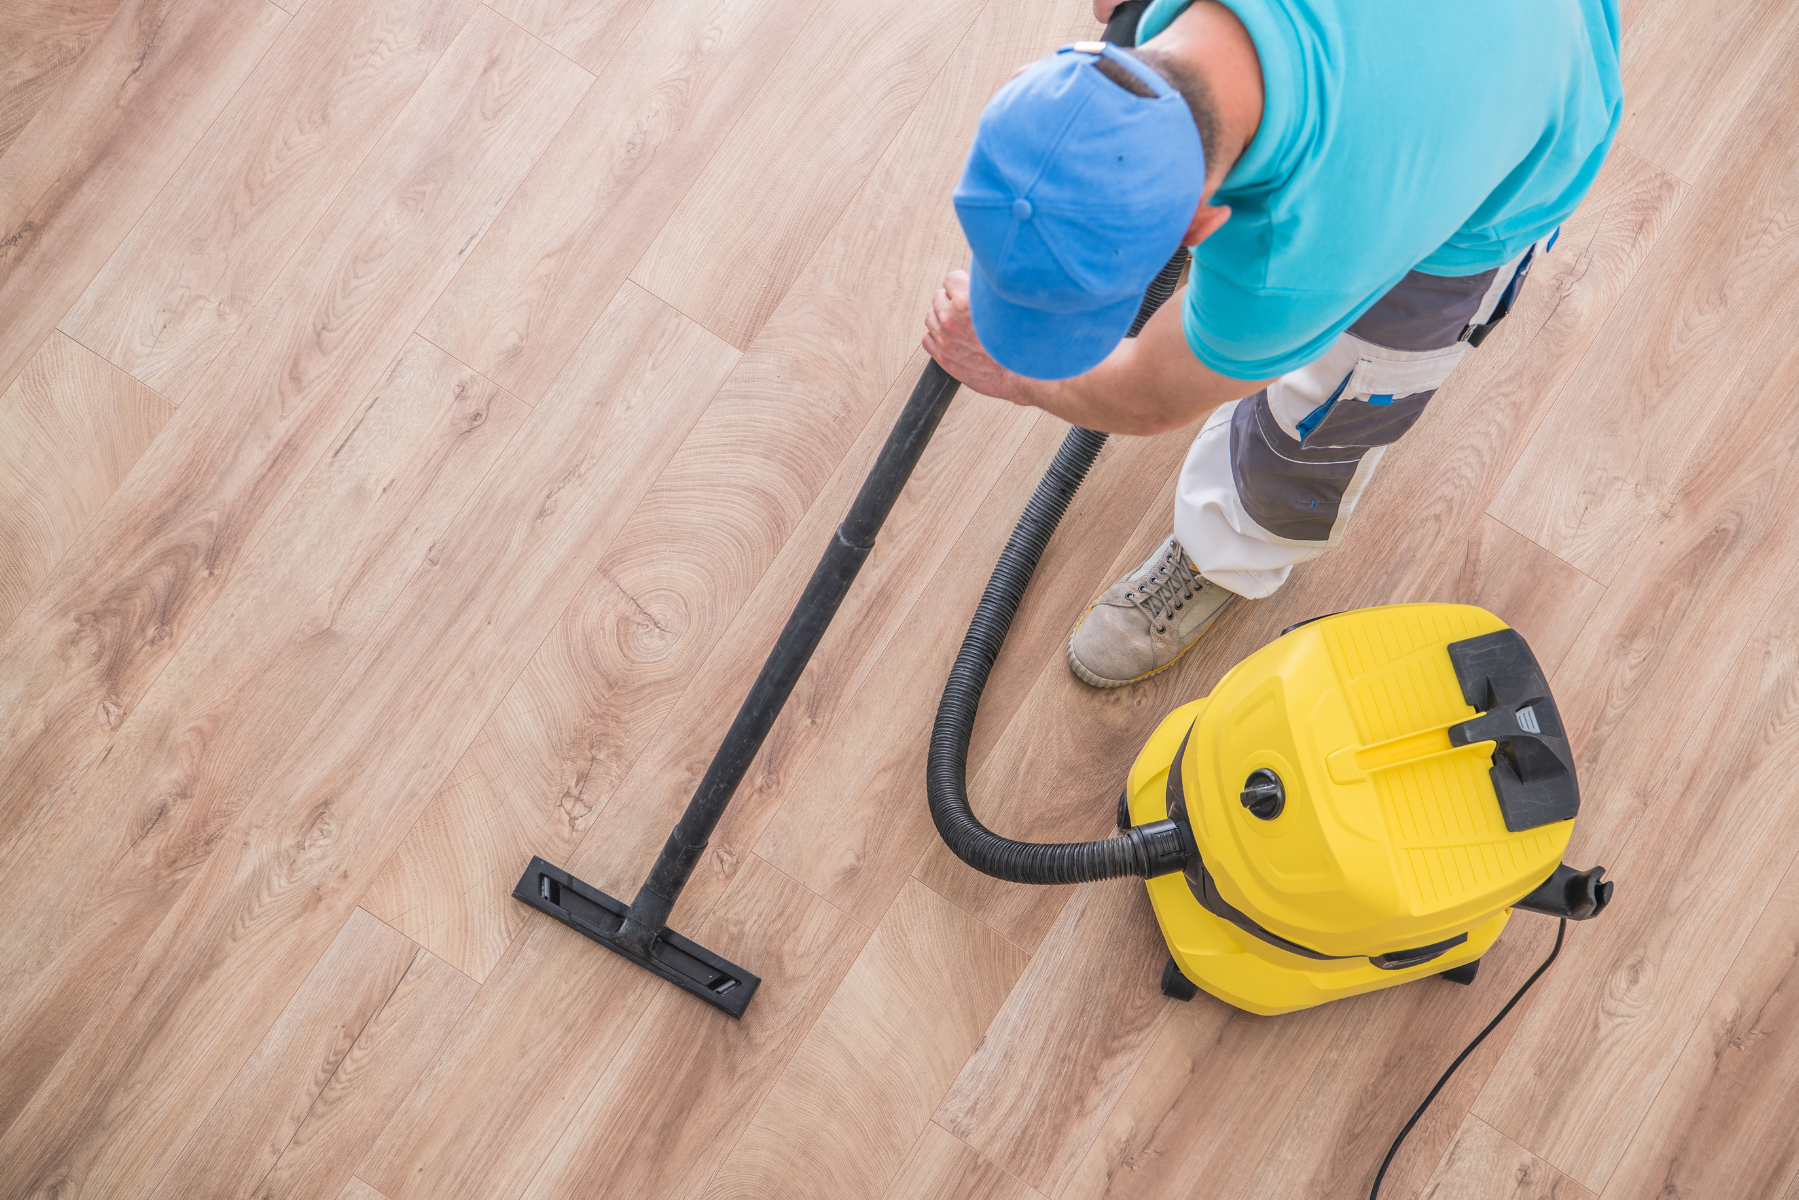 Man with a blue hat hoovering the floor with a Victor V9 Vacuum Cleaner